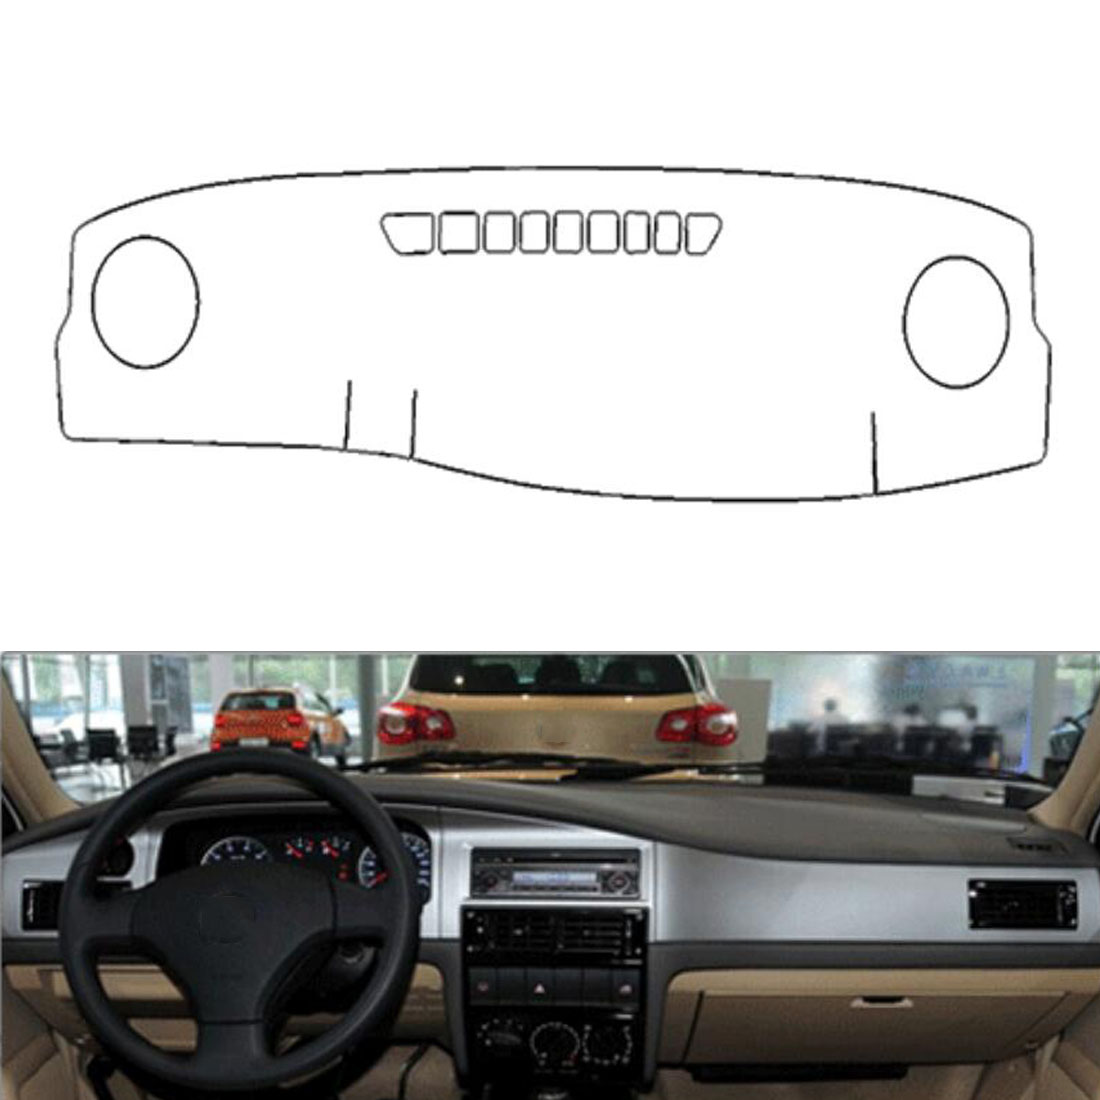 Dongzhen Fit For VW Santana 3000 2004-2010 Auto Car Dashboard Cover Avoid Light Pad Instrument Platform Dash Board Cover Mat